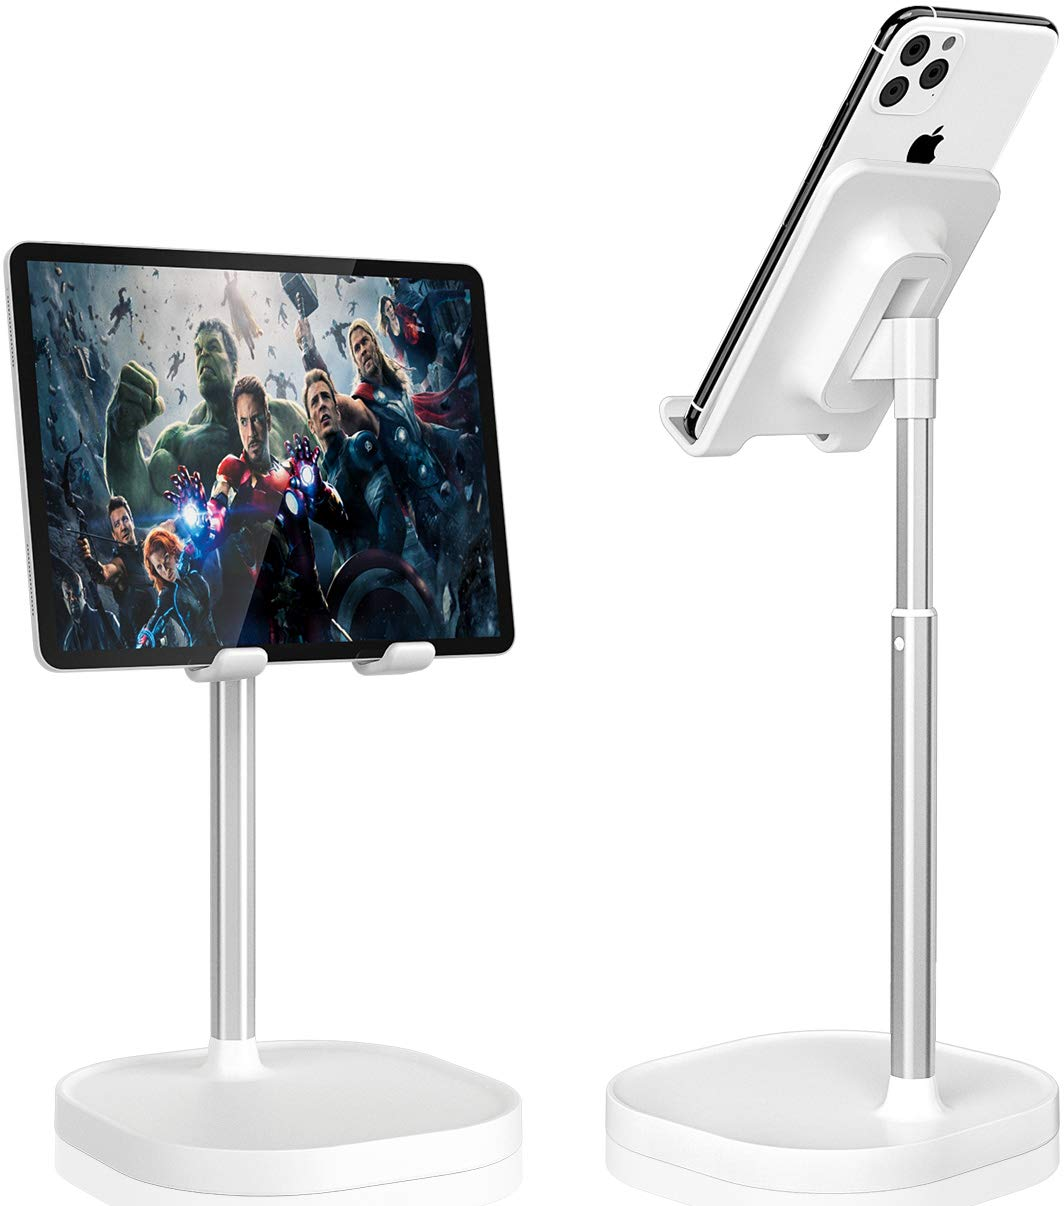 Cell Phone Stand,Angle Height Adjustable Phone Stand for Desk, Thick Case Friendly Phone Holder Stand for Desk, Compatible with All Mobile Phones,iPhone,Switch,iPad,Tablet(4-10in)-White